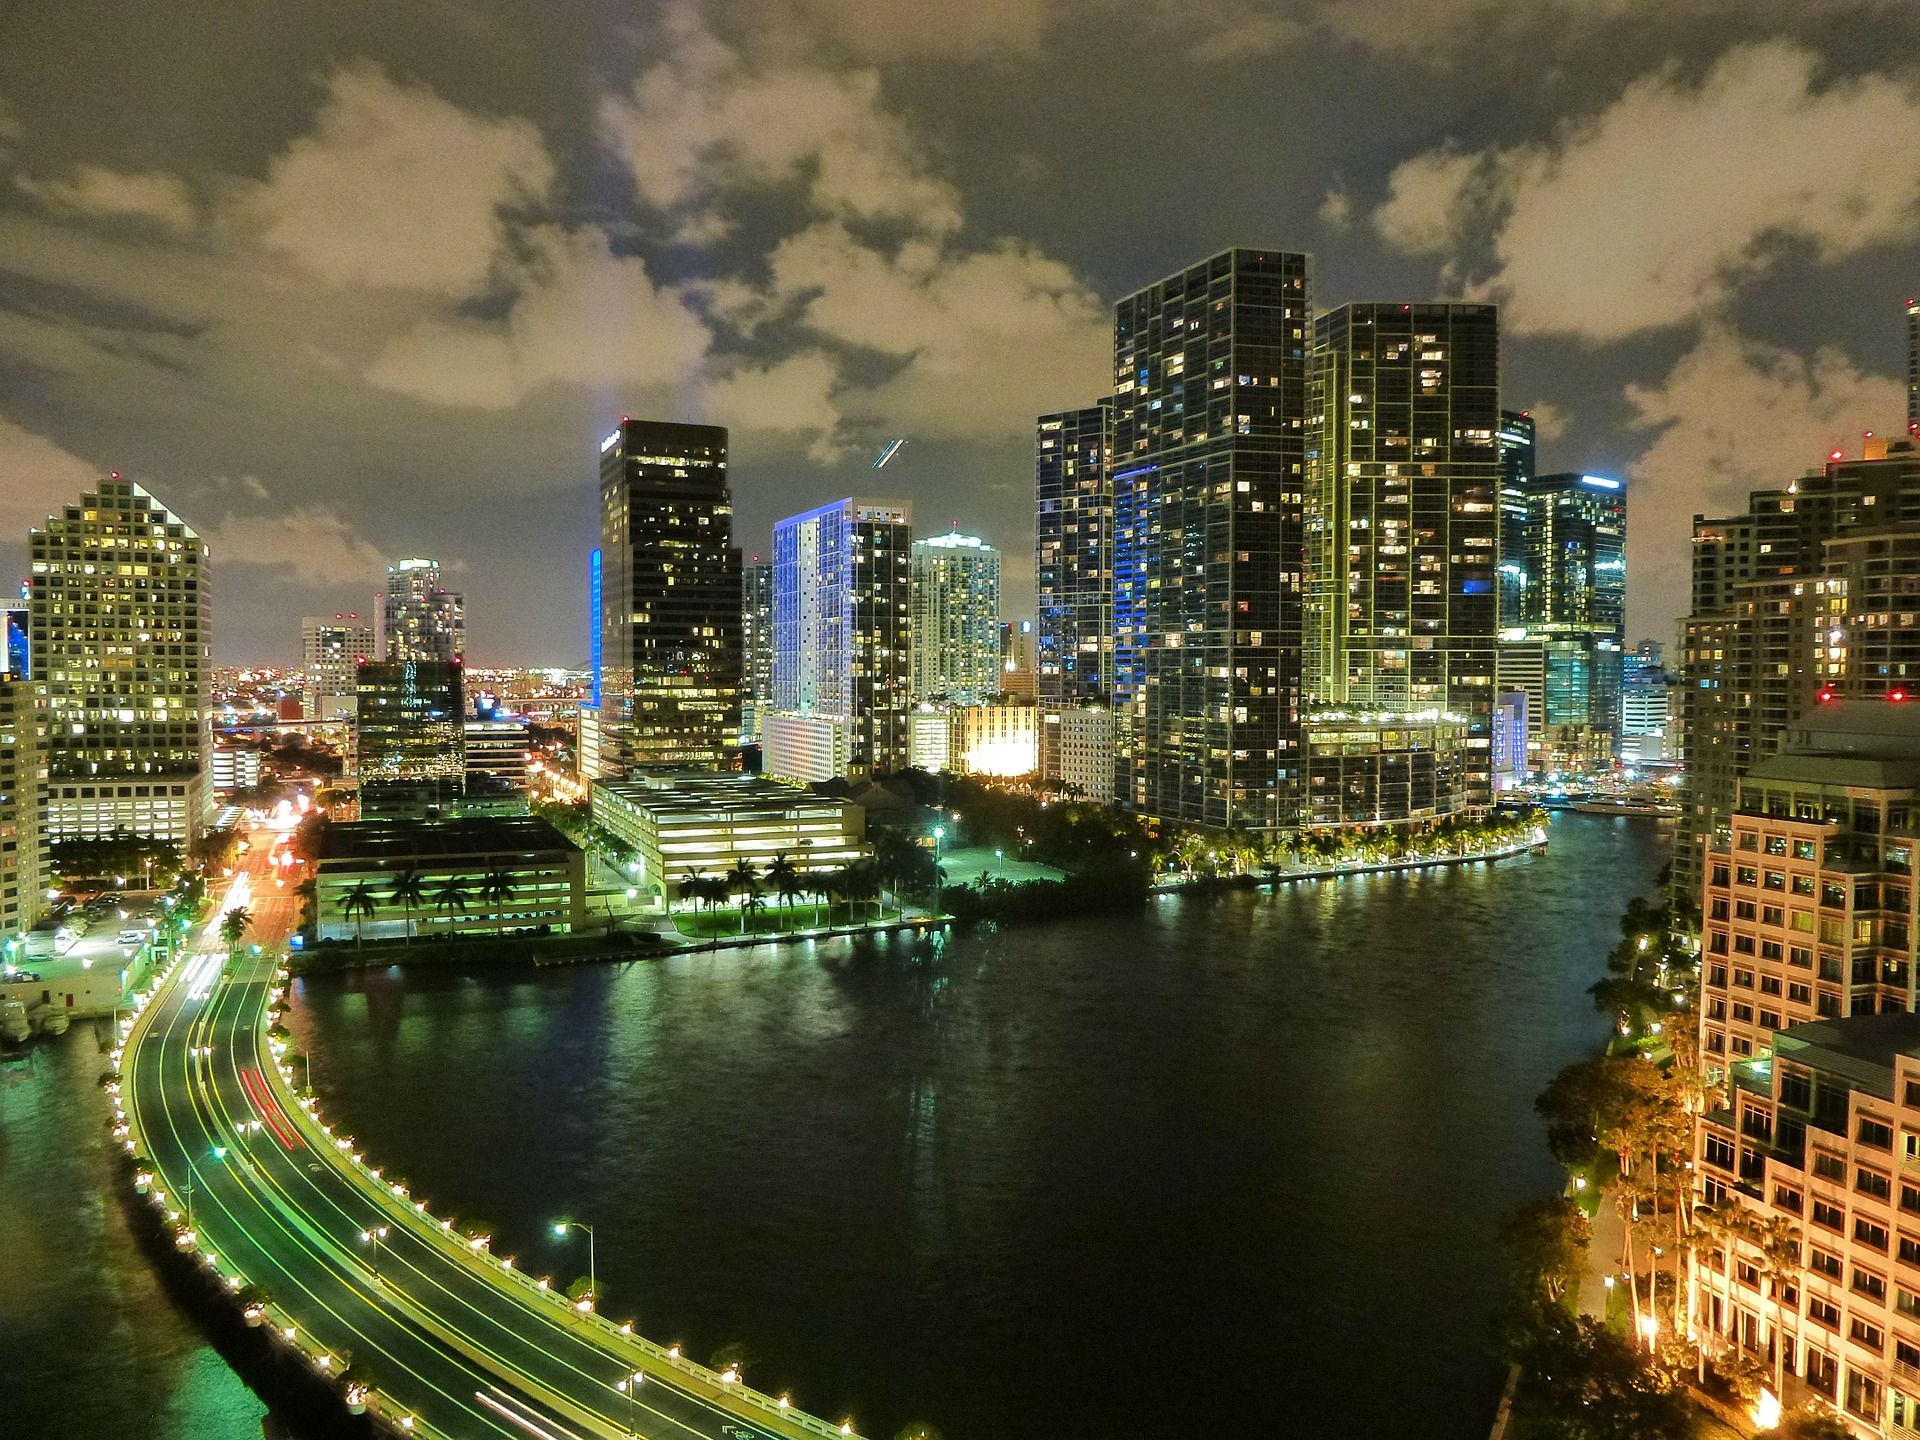 The Top 15 Things To Do In Miami, Florida (With images